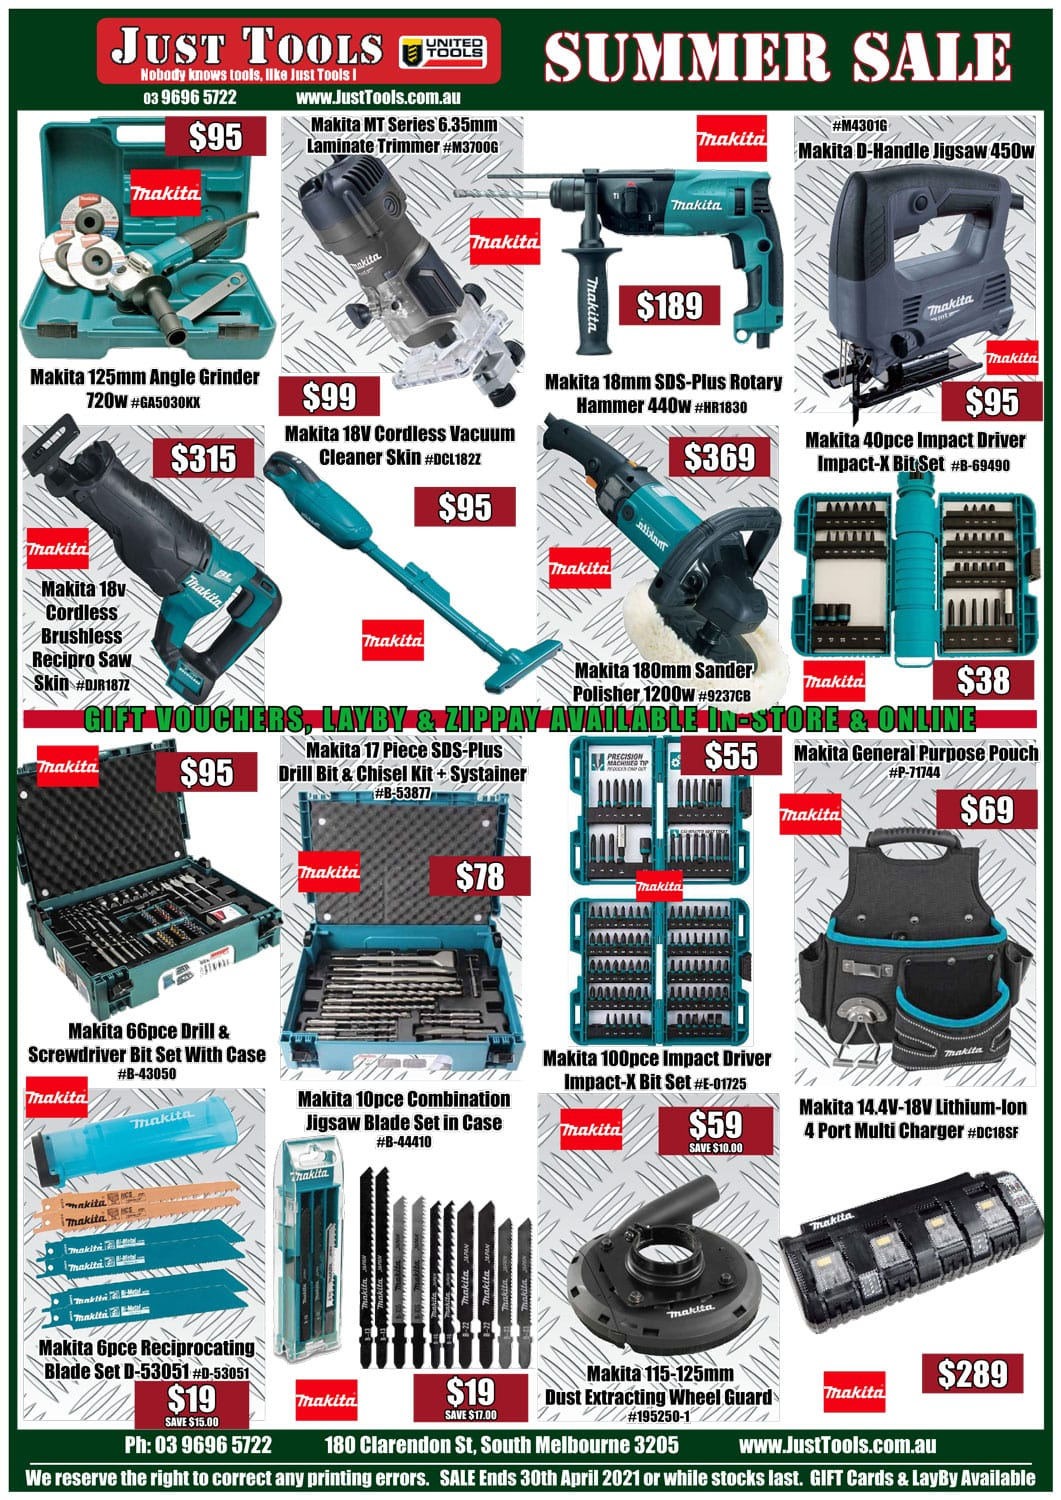 just-tools-summer-sale-page-5b-min.jpg